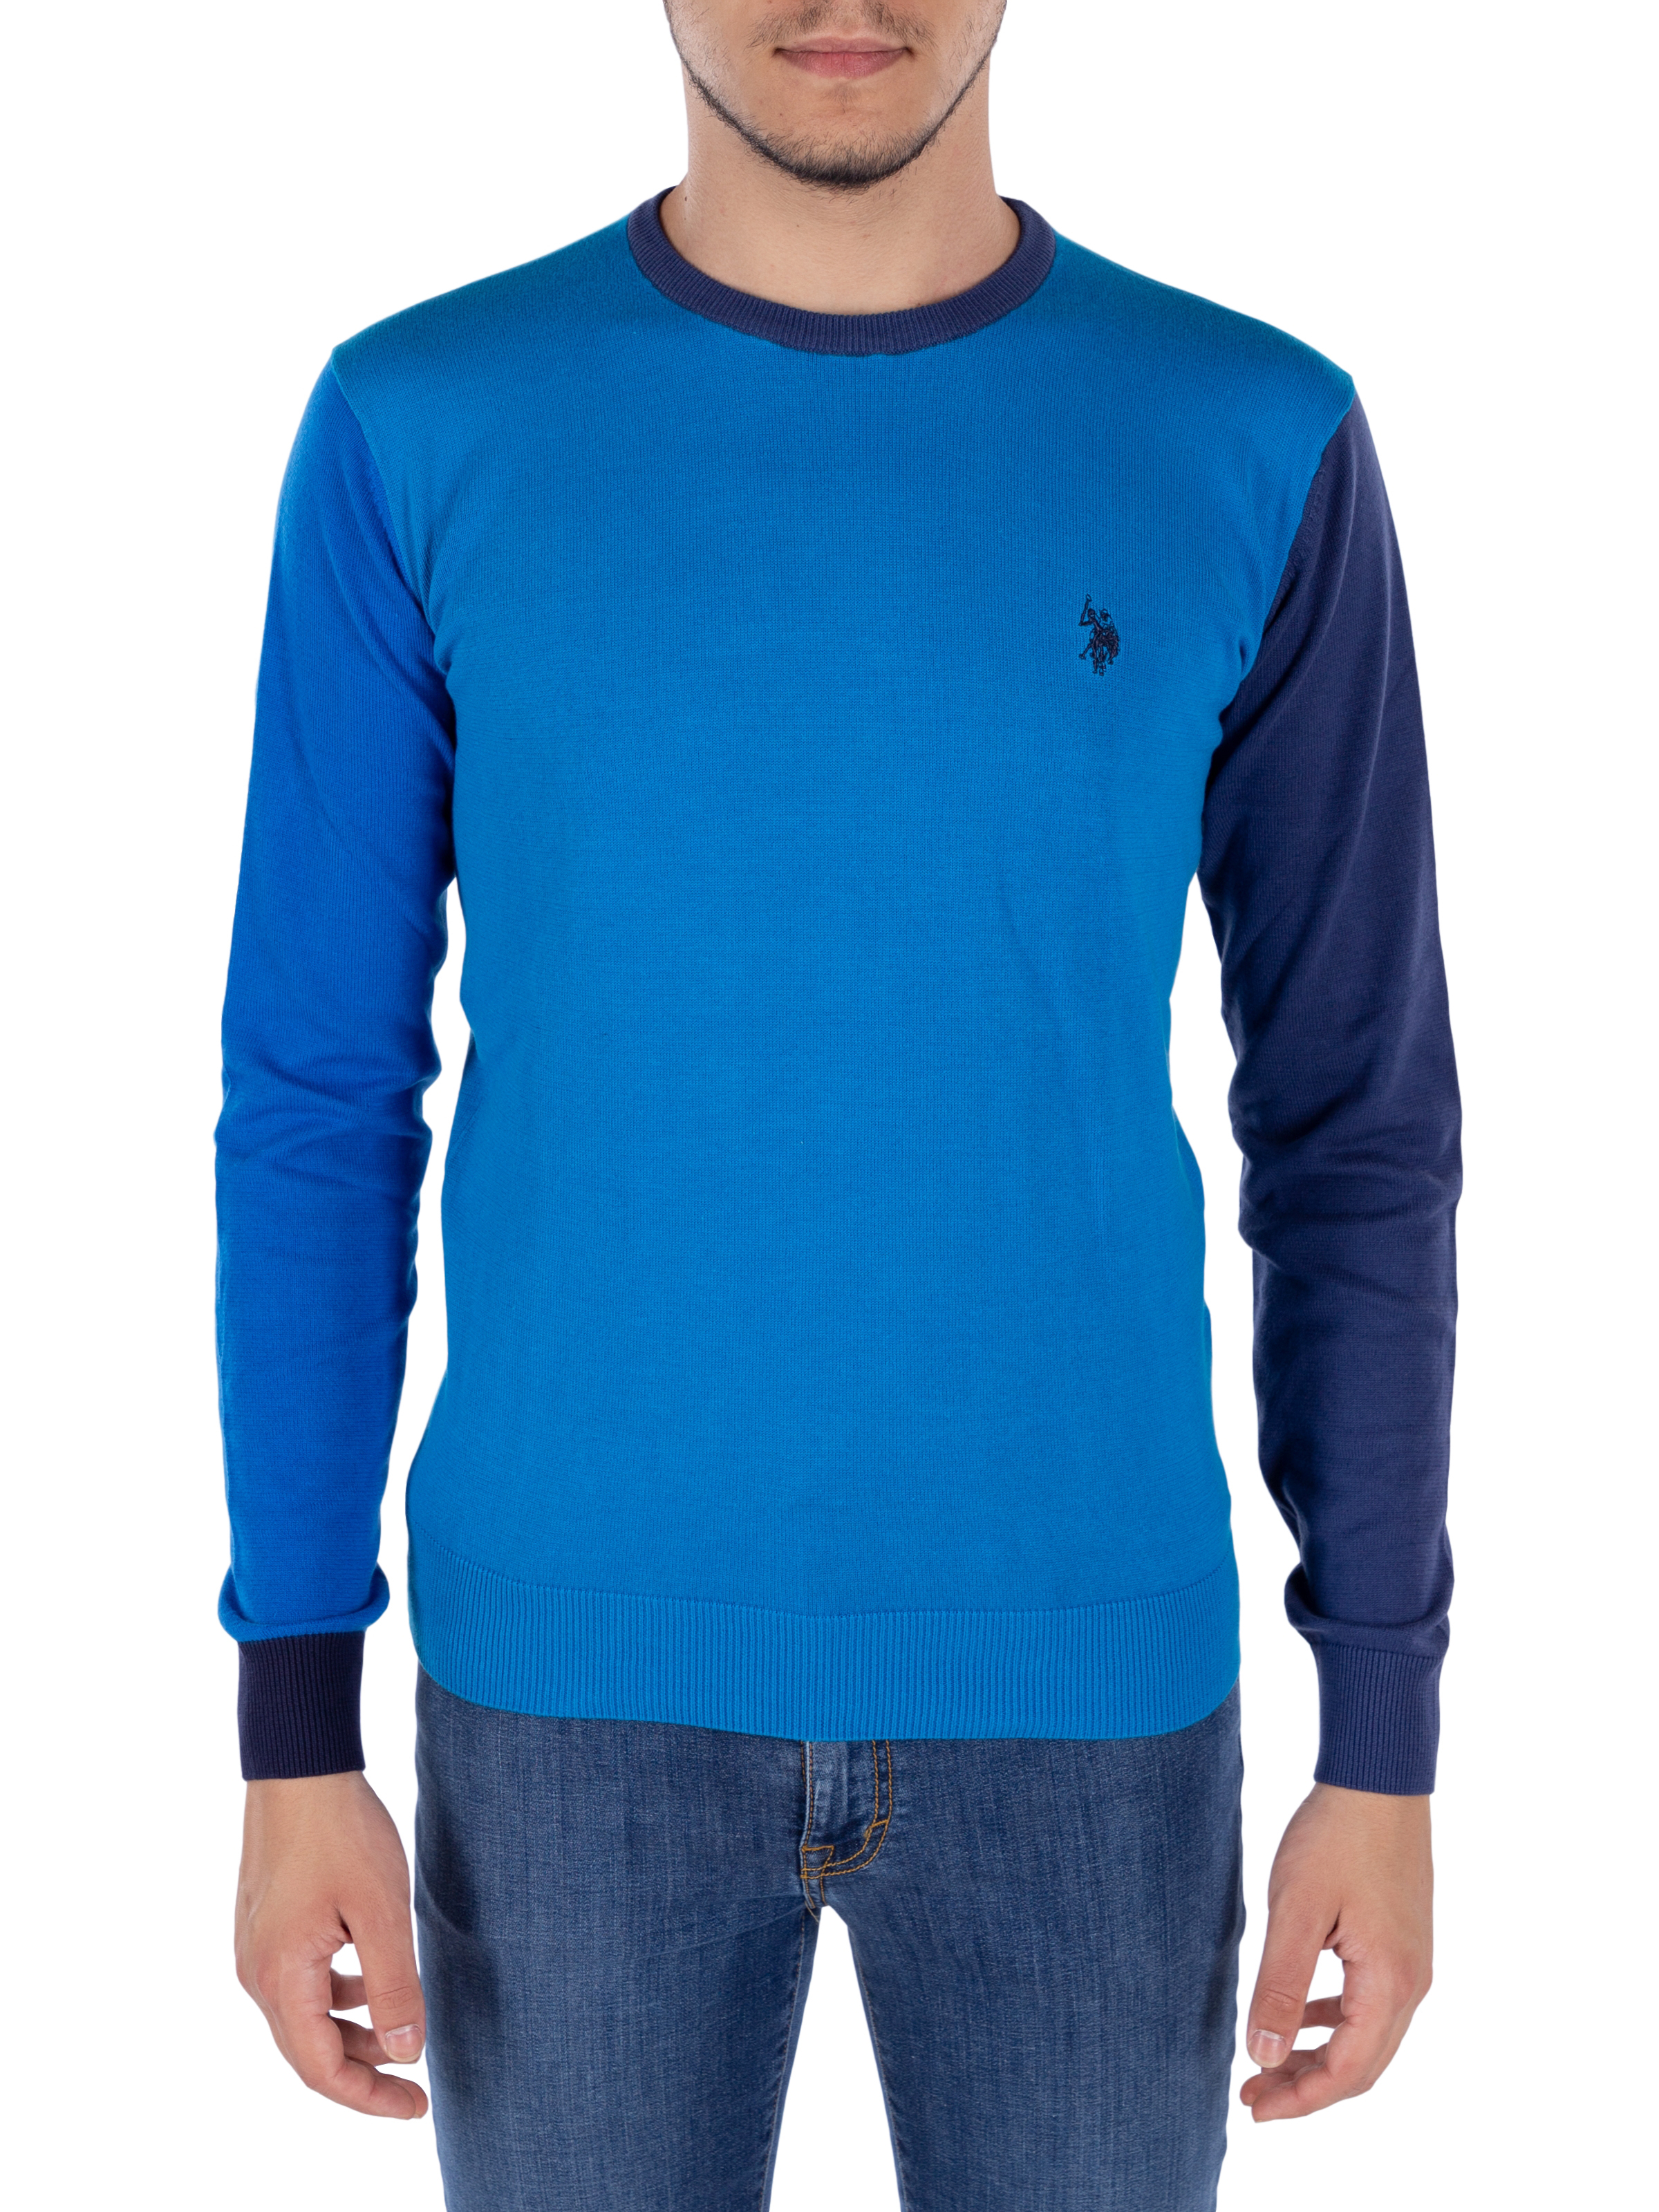 U.S.Polo Assn. Erno Round Neck Knit 5652251727